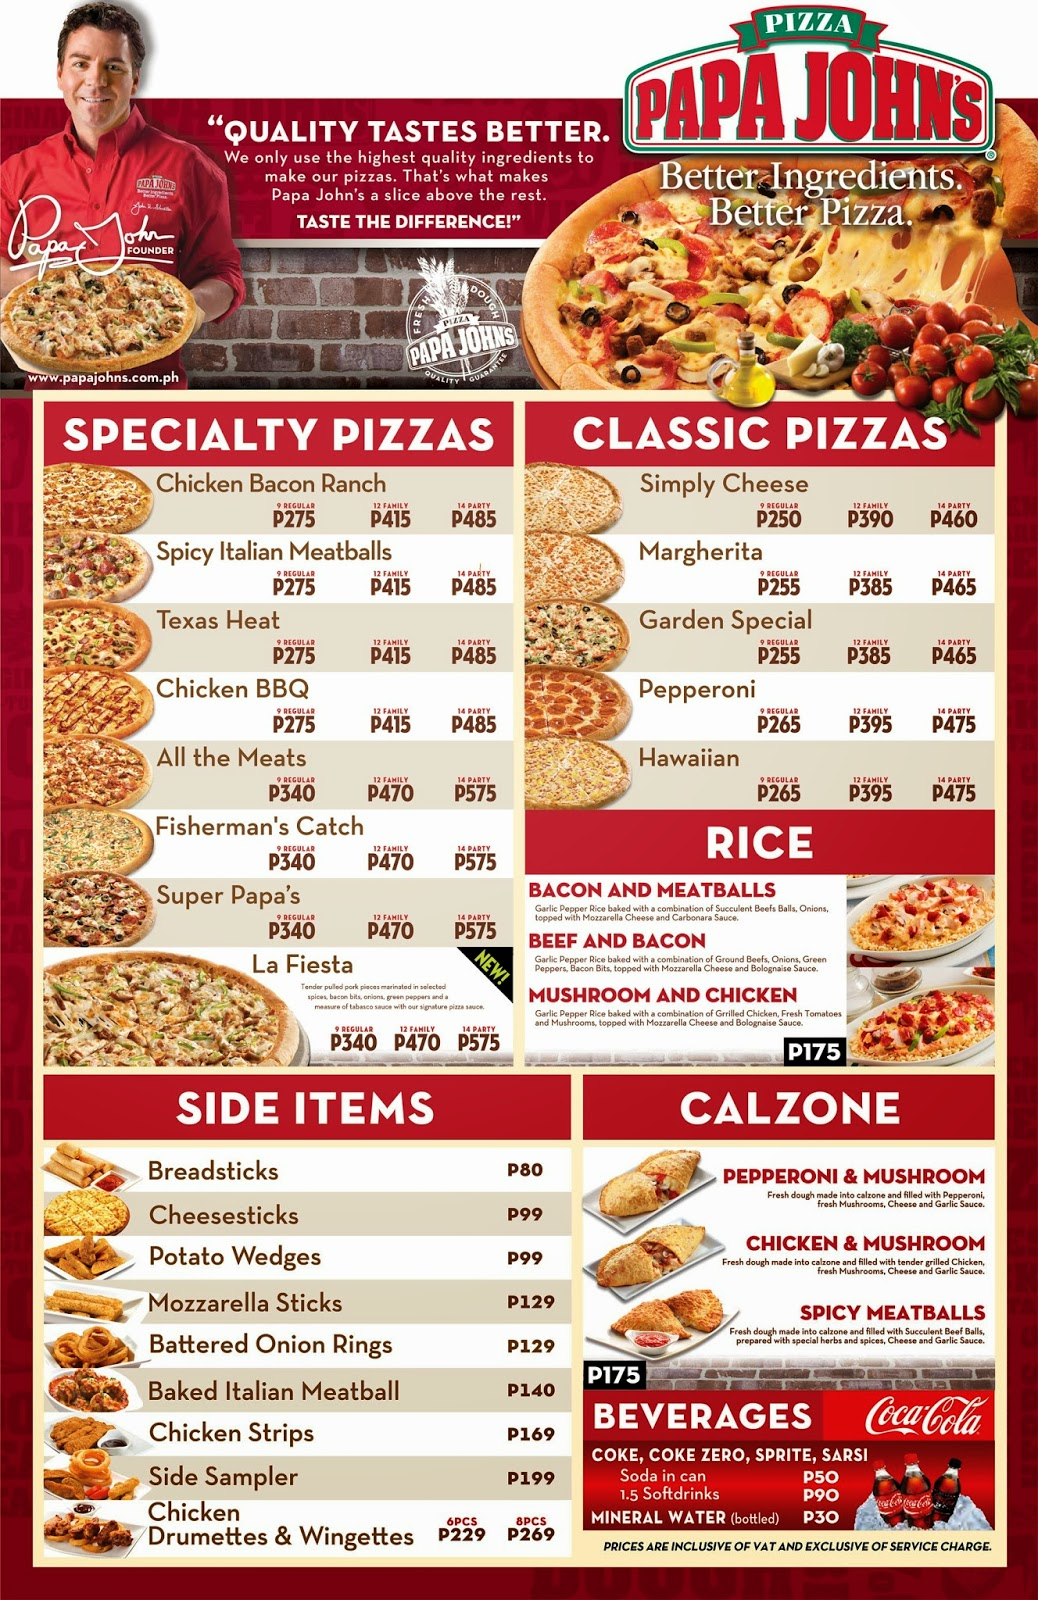 Free pizza coupons pizza hut specials dominos pizza papa john s pizza - Papa Jhons Coupons